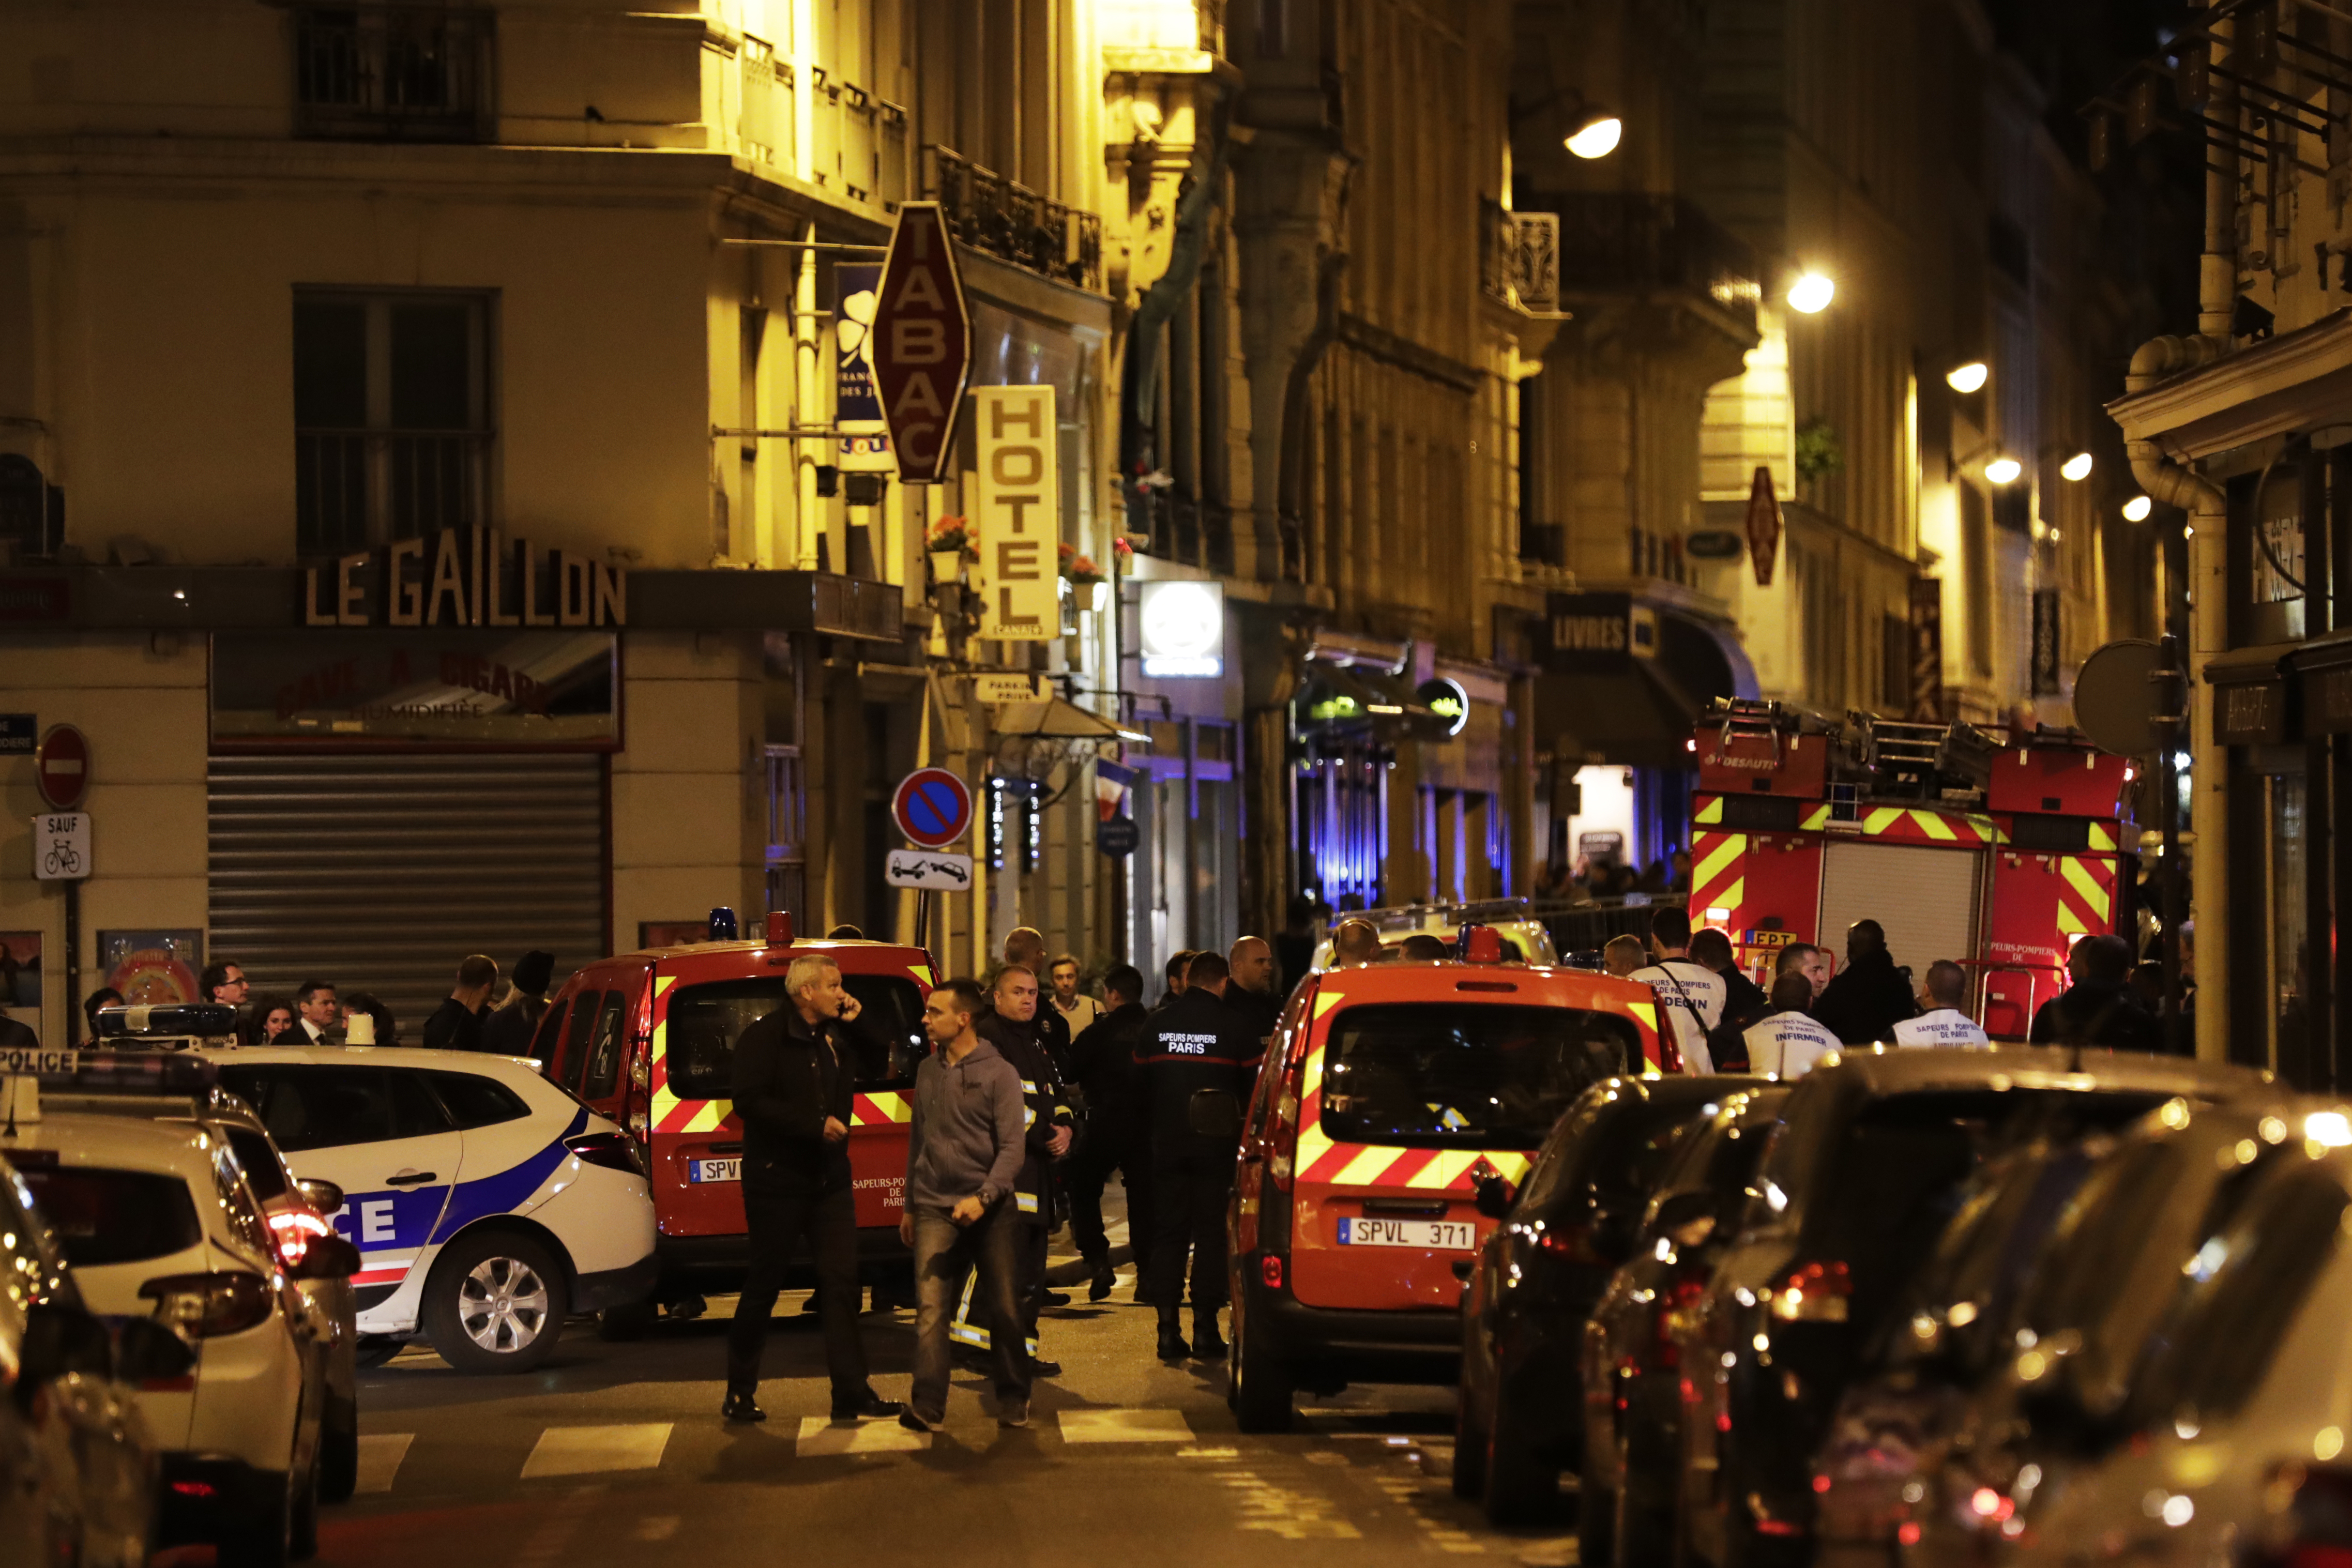 Policemen and emergency service members stand in a blocked street in Paris after one person was killed and several injured by a man armed with a knife, who was shot dead by police, May 12, 2018.